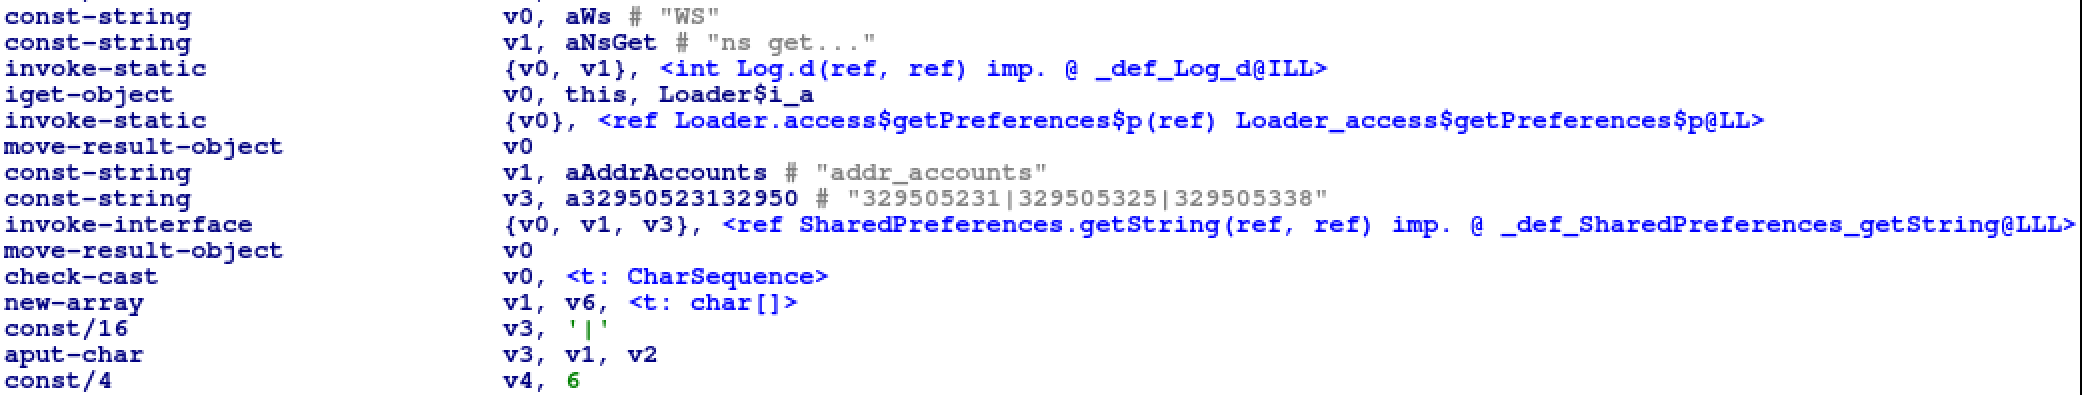 Malware Descriptions Page 3 Cyber Pros Consulting Heat Hack A New Method To Steal Atm Pin Codes After Getting The Content From Sohucom Webpage Extracts Chinese String Specific Part Of Html Code